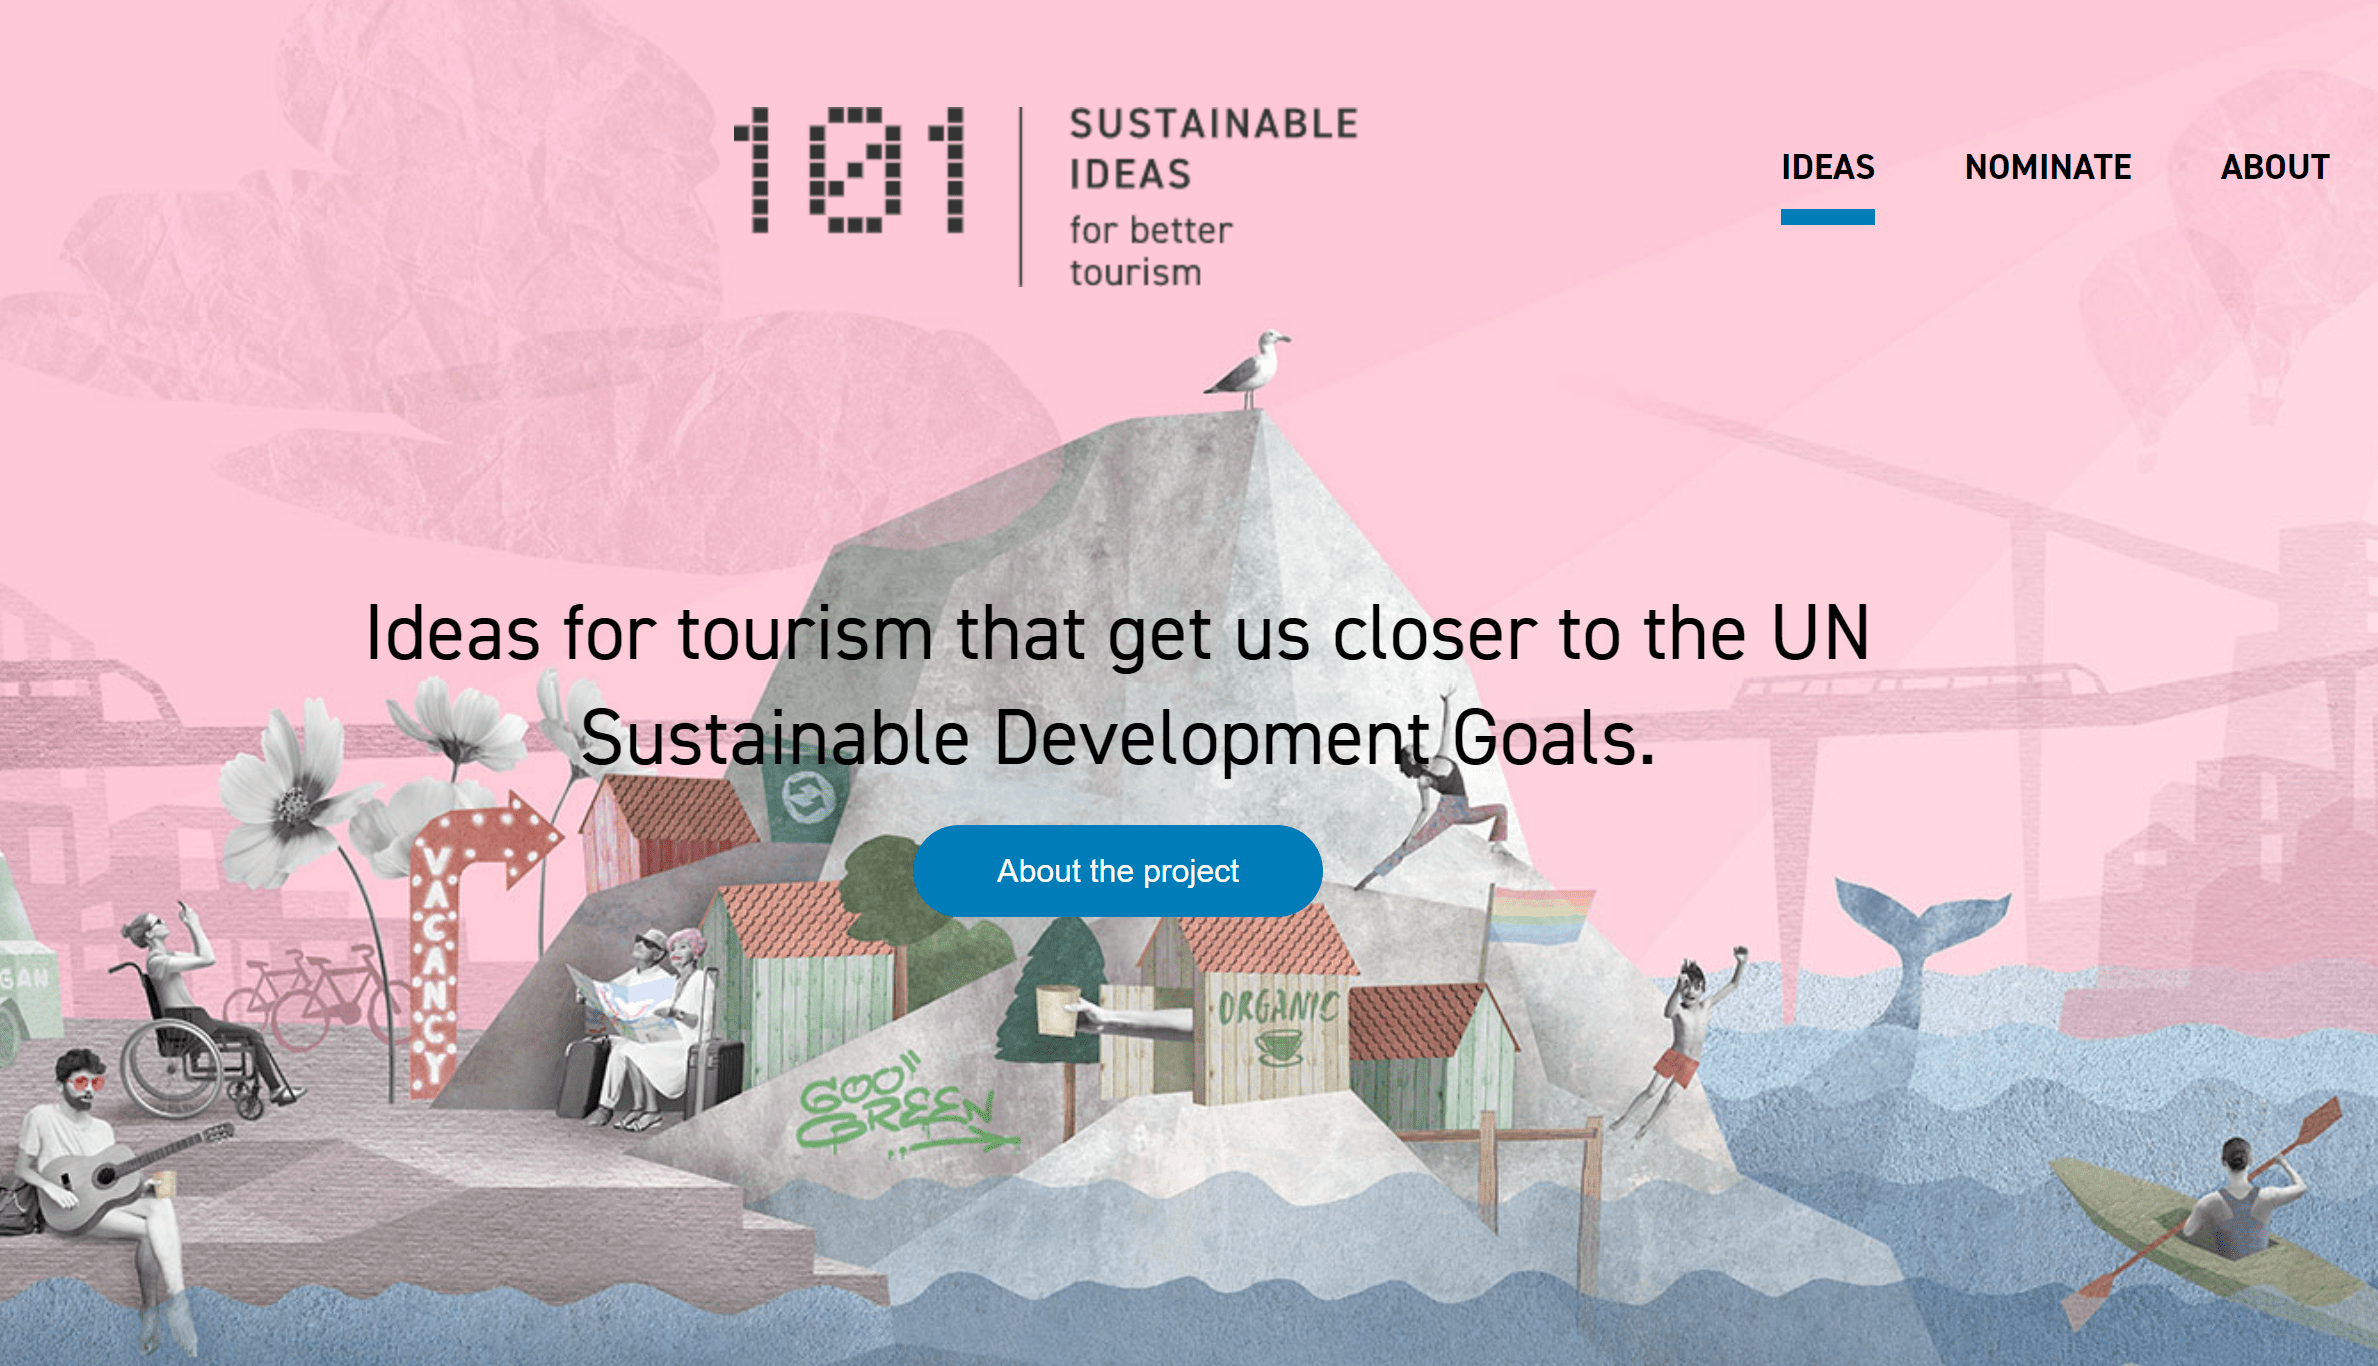 101 sustainable ideas for better tourism